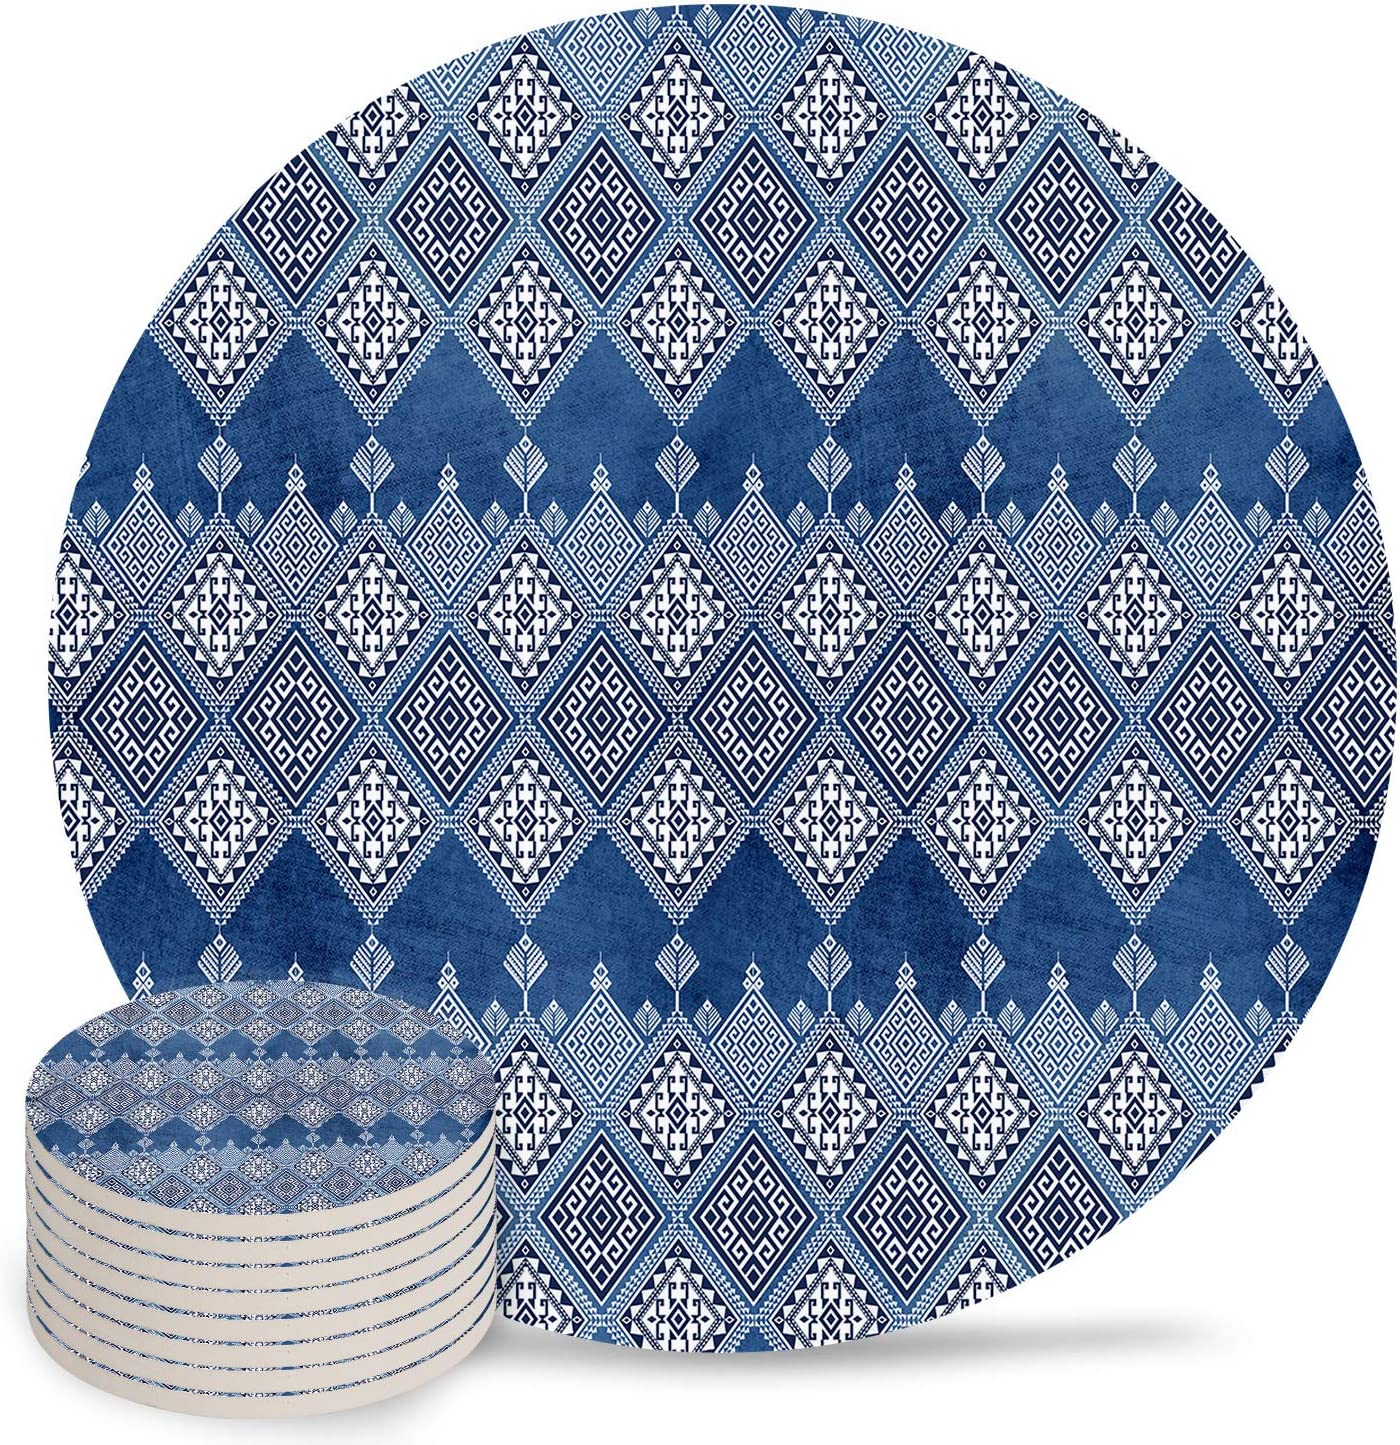 Max 61% OFF Absorbent Coasters Ceramic Cups Place Style Mats store Geometri Ethnic